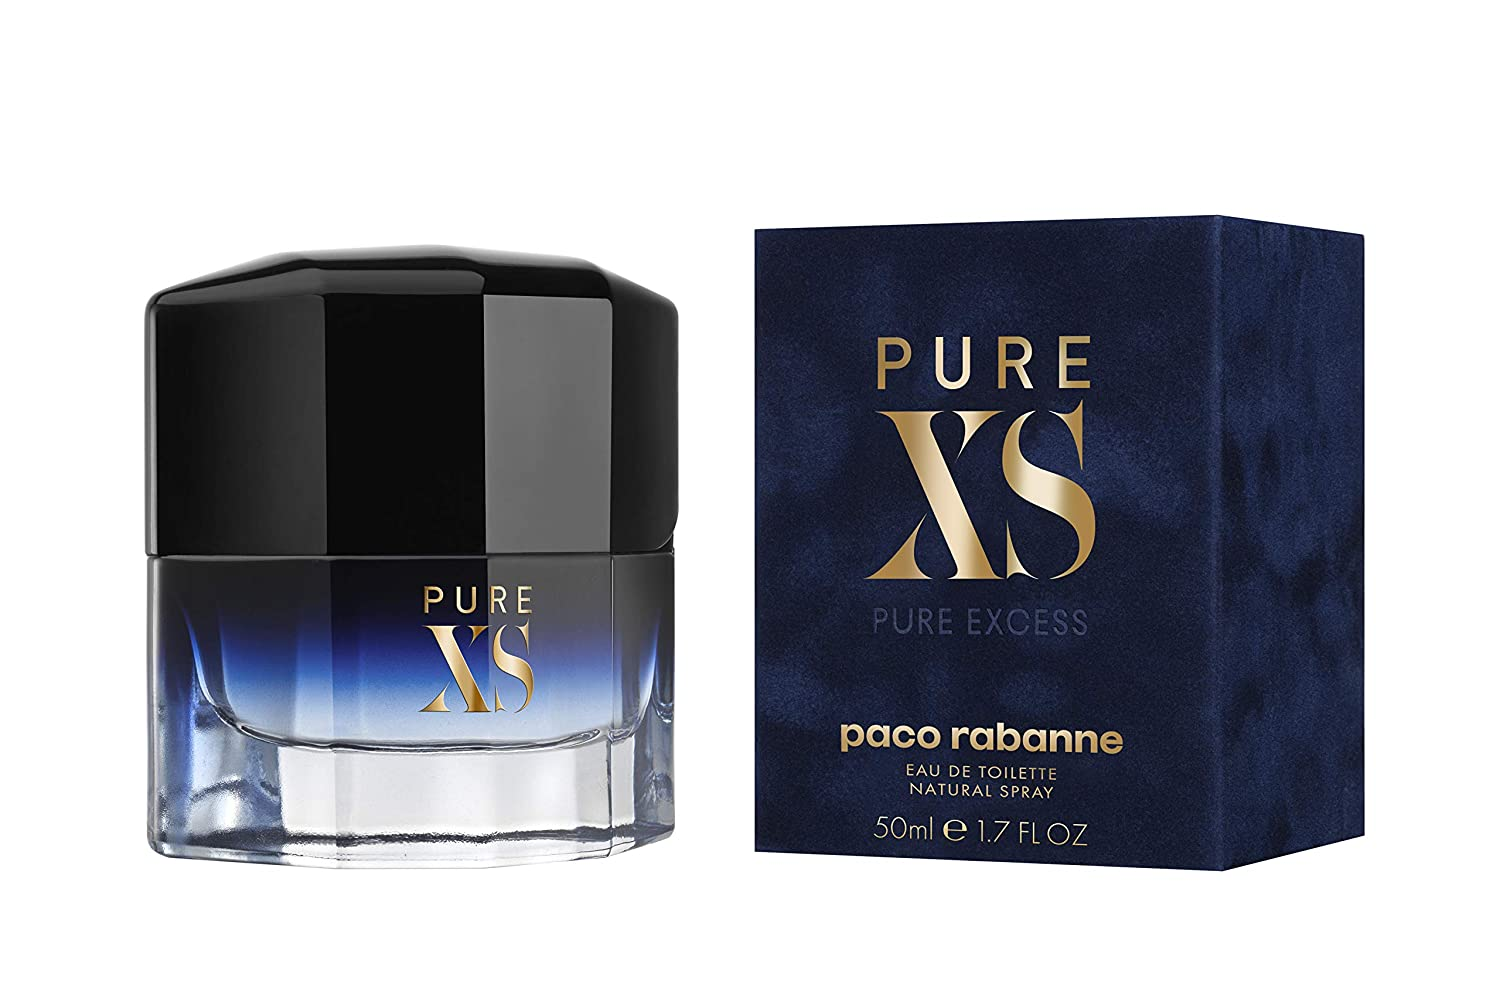 Amazon.com: Pure XS by Paco Rabanne Eau de Toilette Spray 50ml: PACO RABANNE: Health & Personal Care